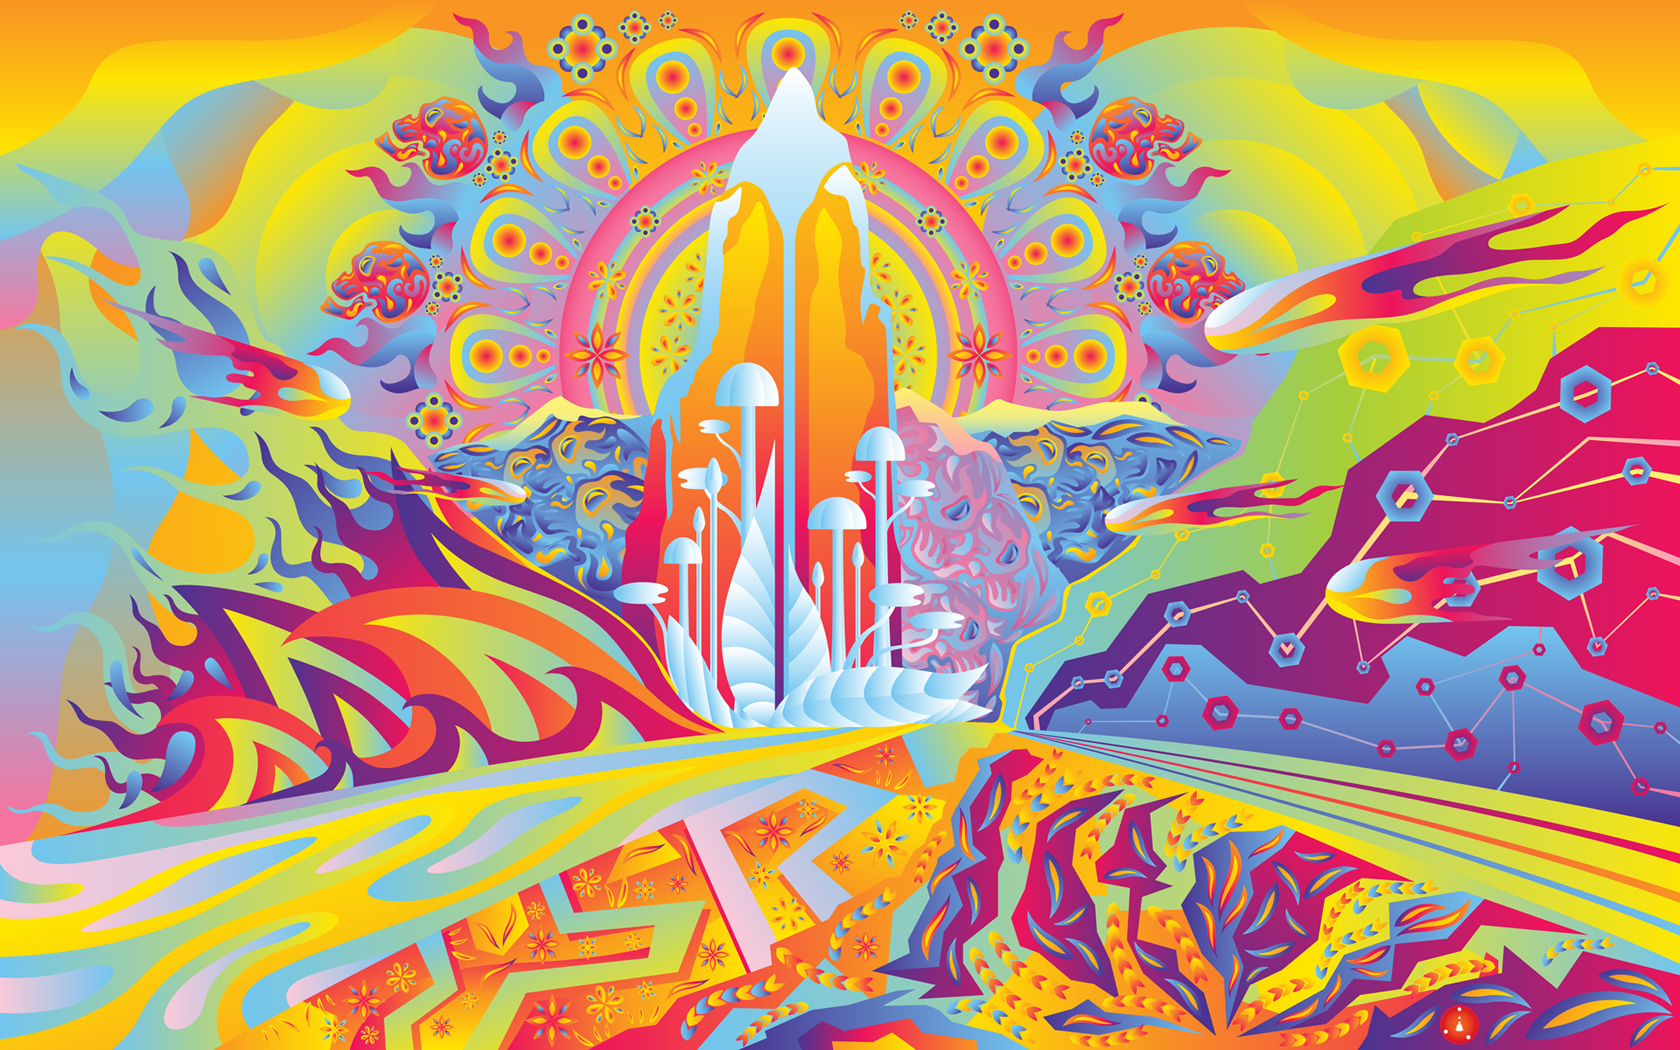 Artistic psychedelic colors fantasy sci-fi landscapes ...